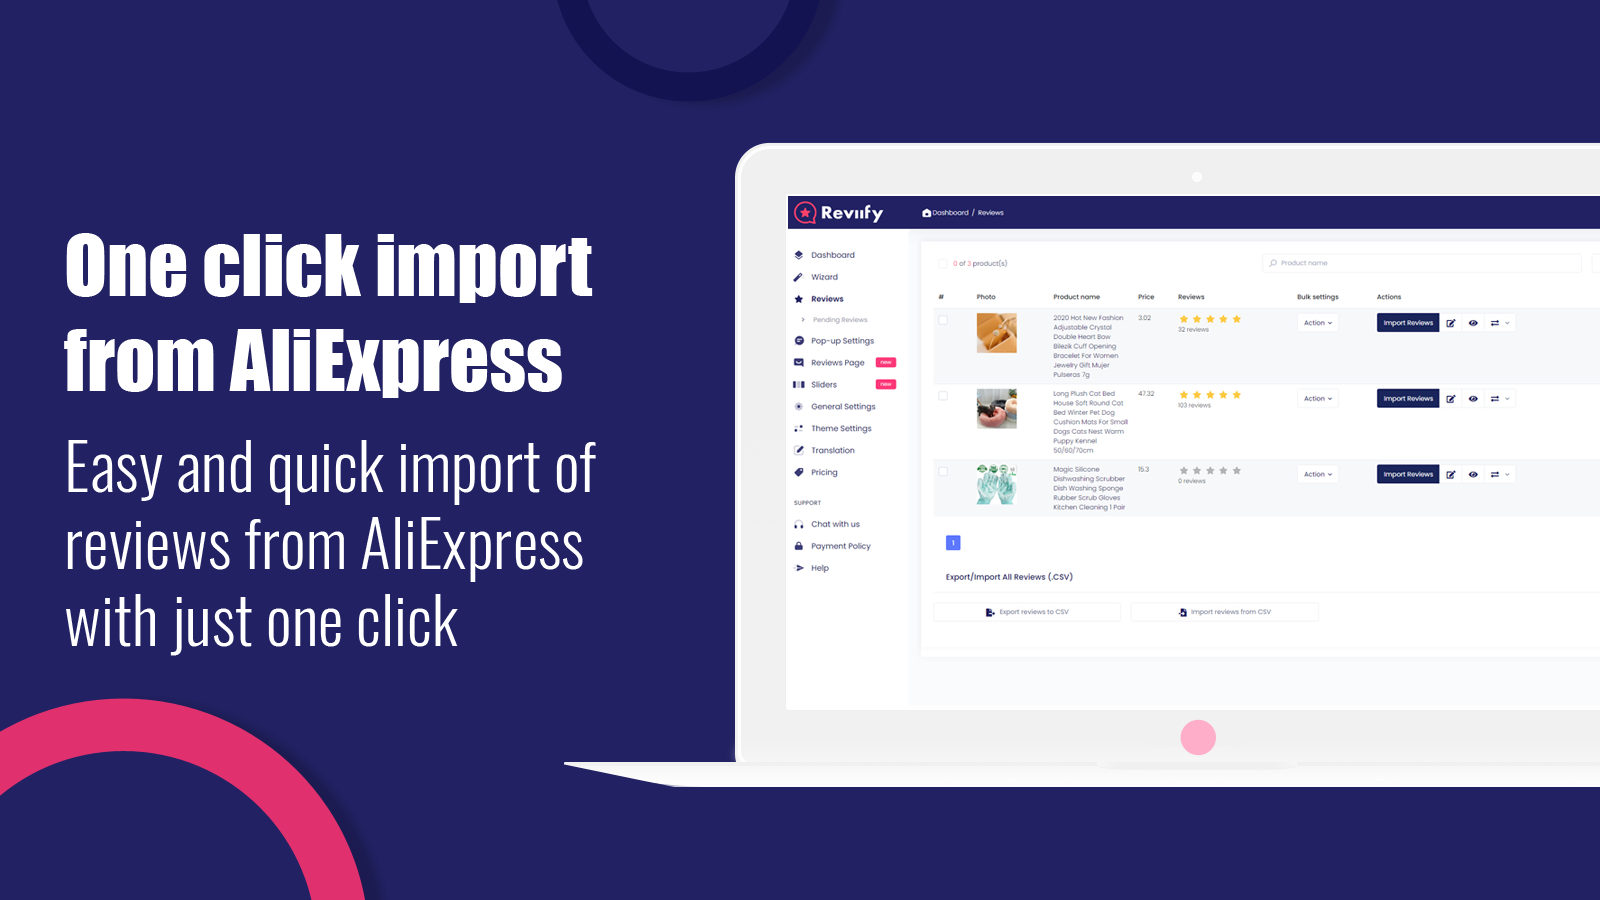 One click import from AliExpress - import AliExpress reviews